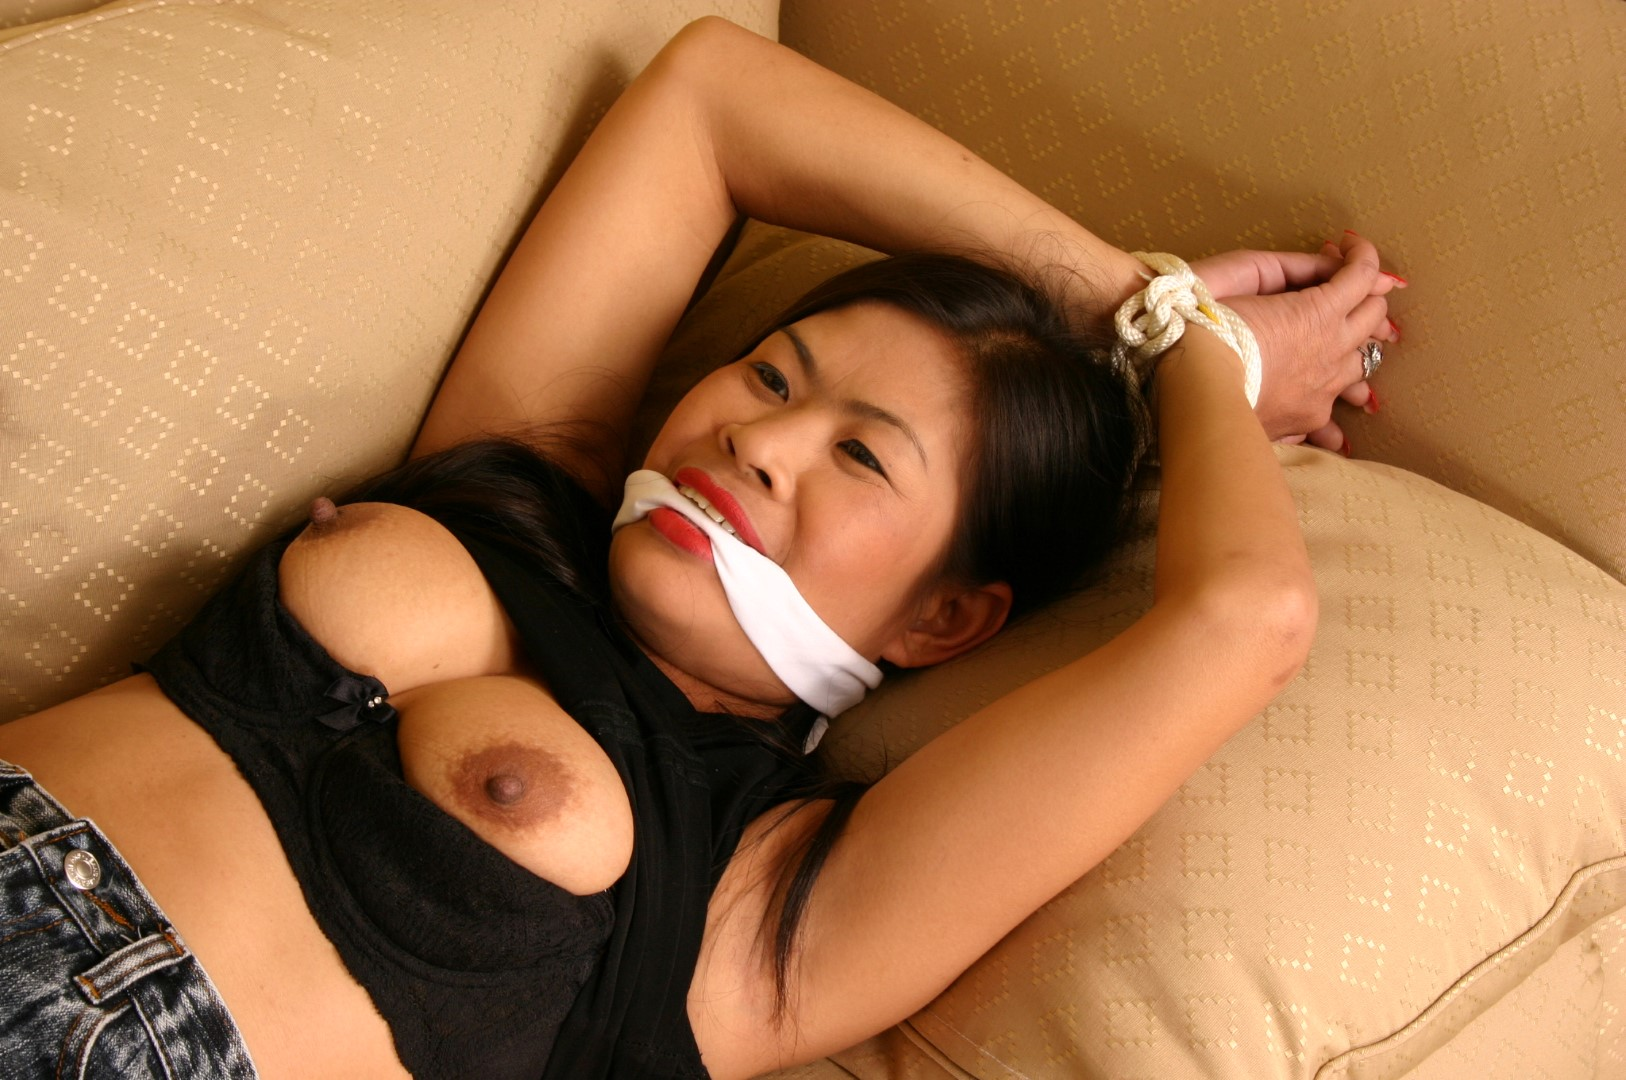 Asian girls bondage nude